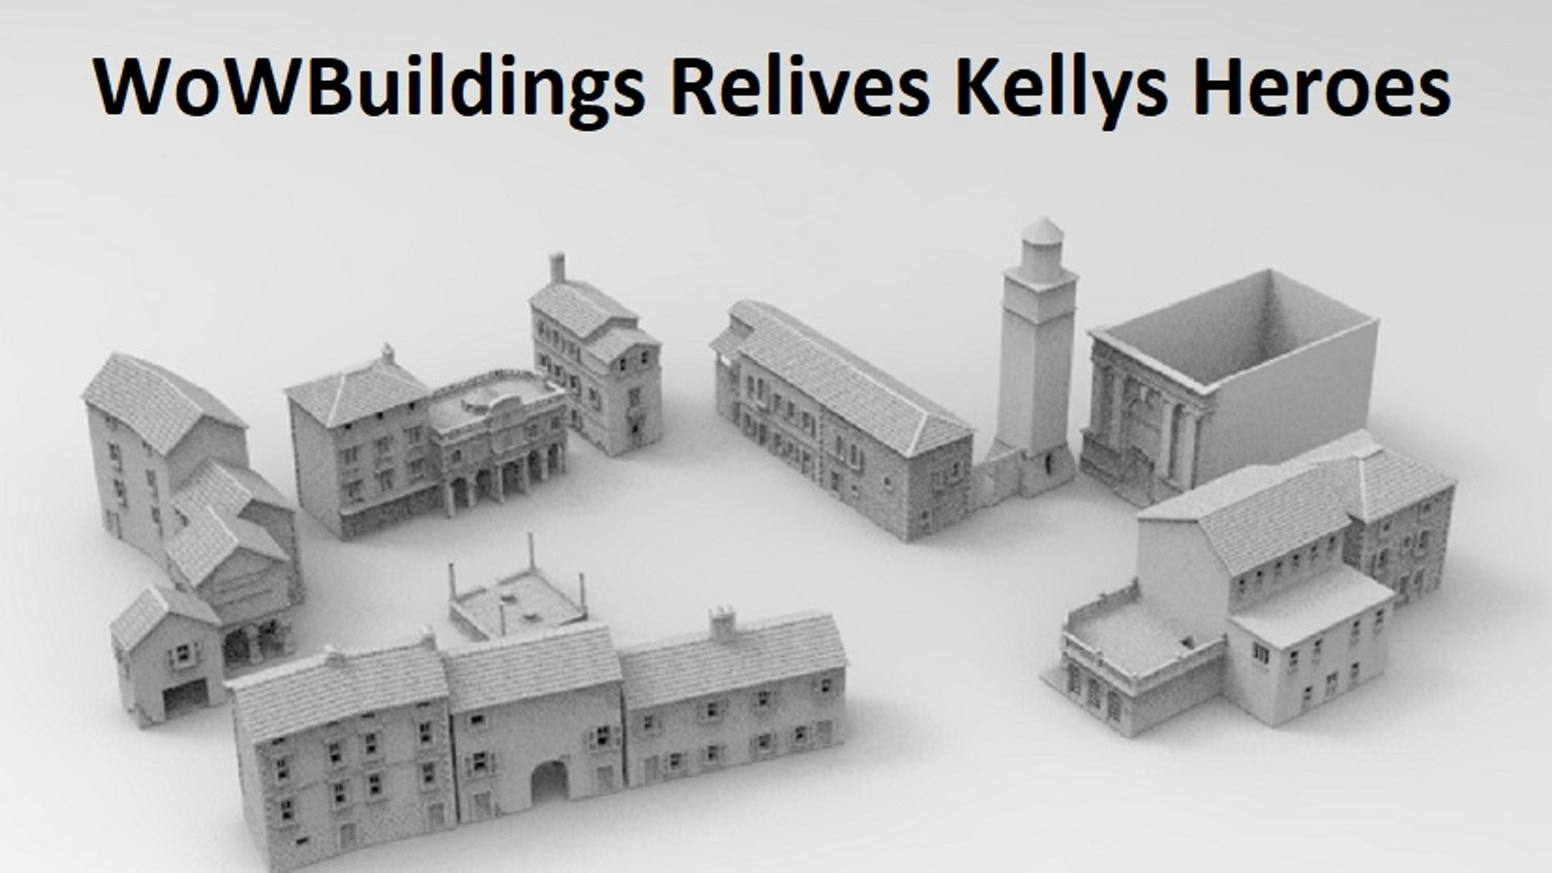 WOWBuildings relives Kelly's Heroes